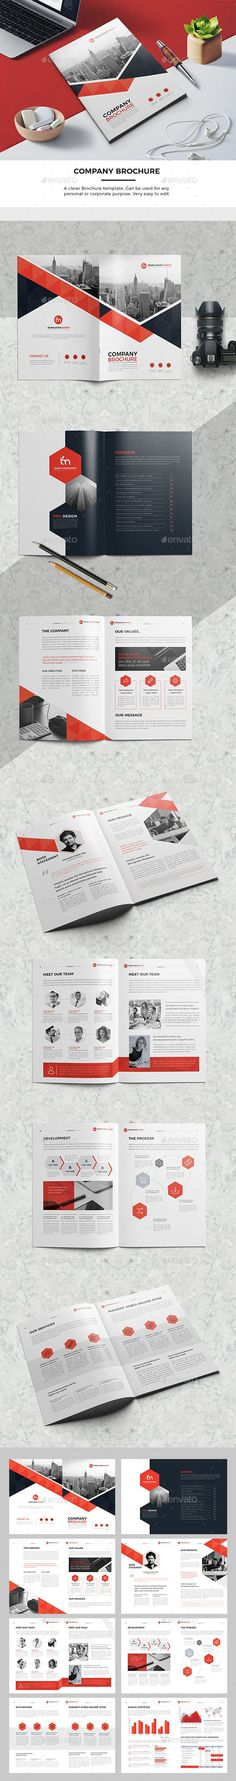 TM Company Brochure — InDesign INDD #visual #clean • Download ➝ https://graphicriver.net/item/tm-company-brochure/19562914?ref=pxcr